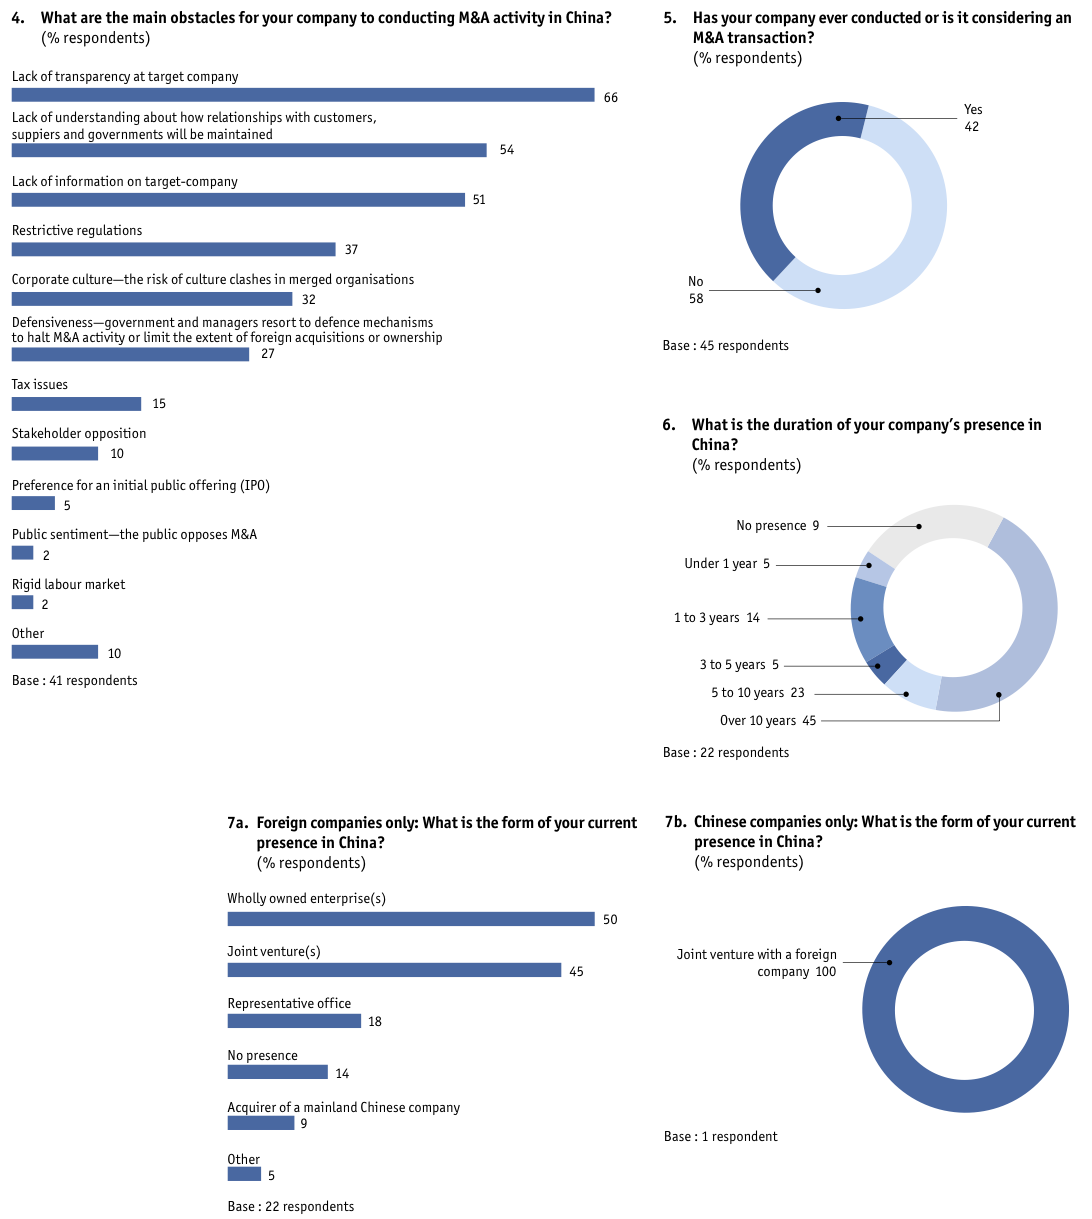 Figure 45 Appendix: Survey results/North America-based companies only